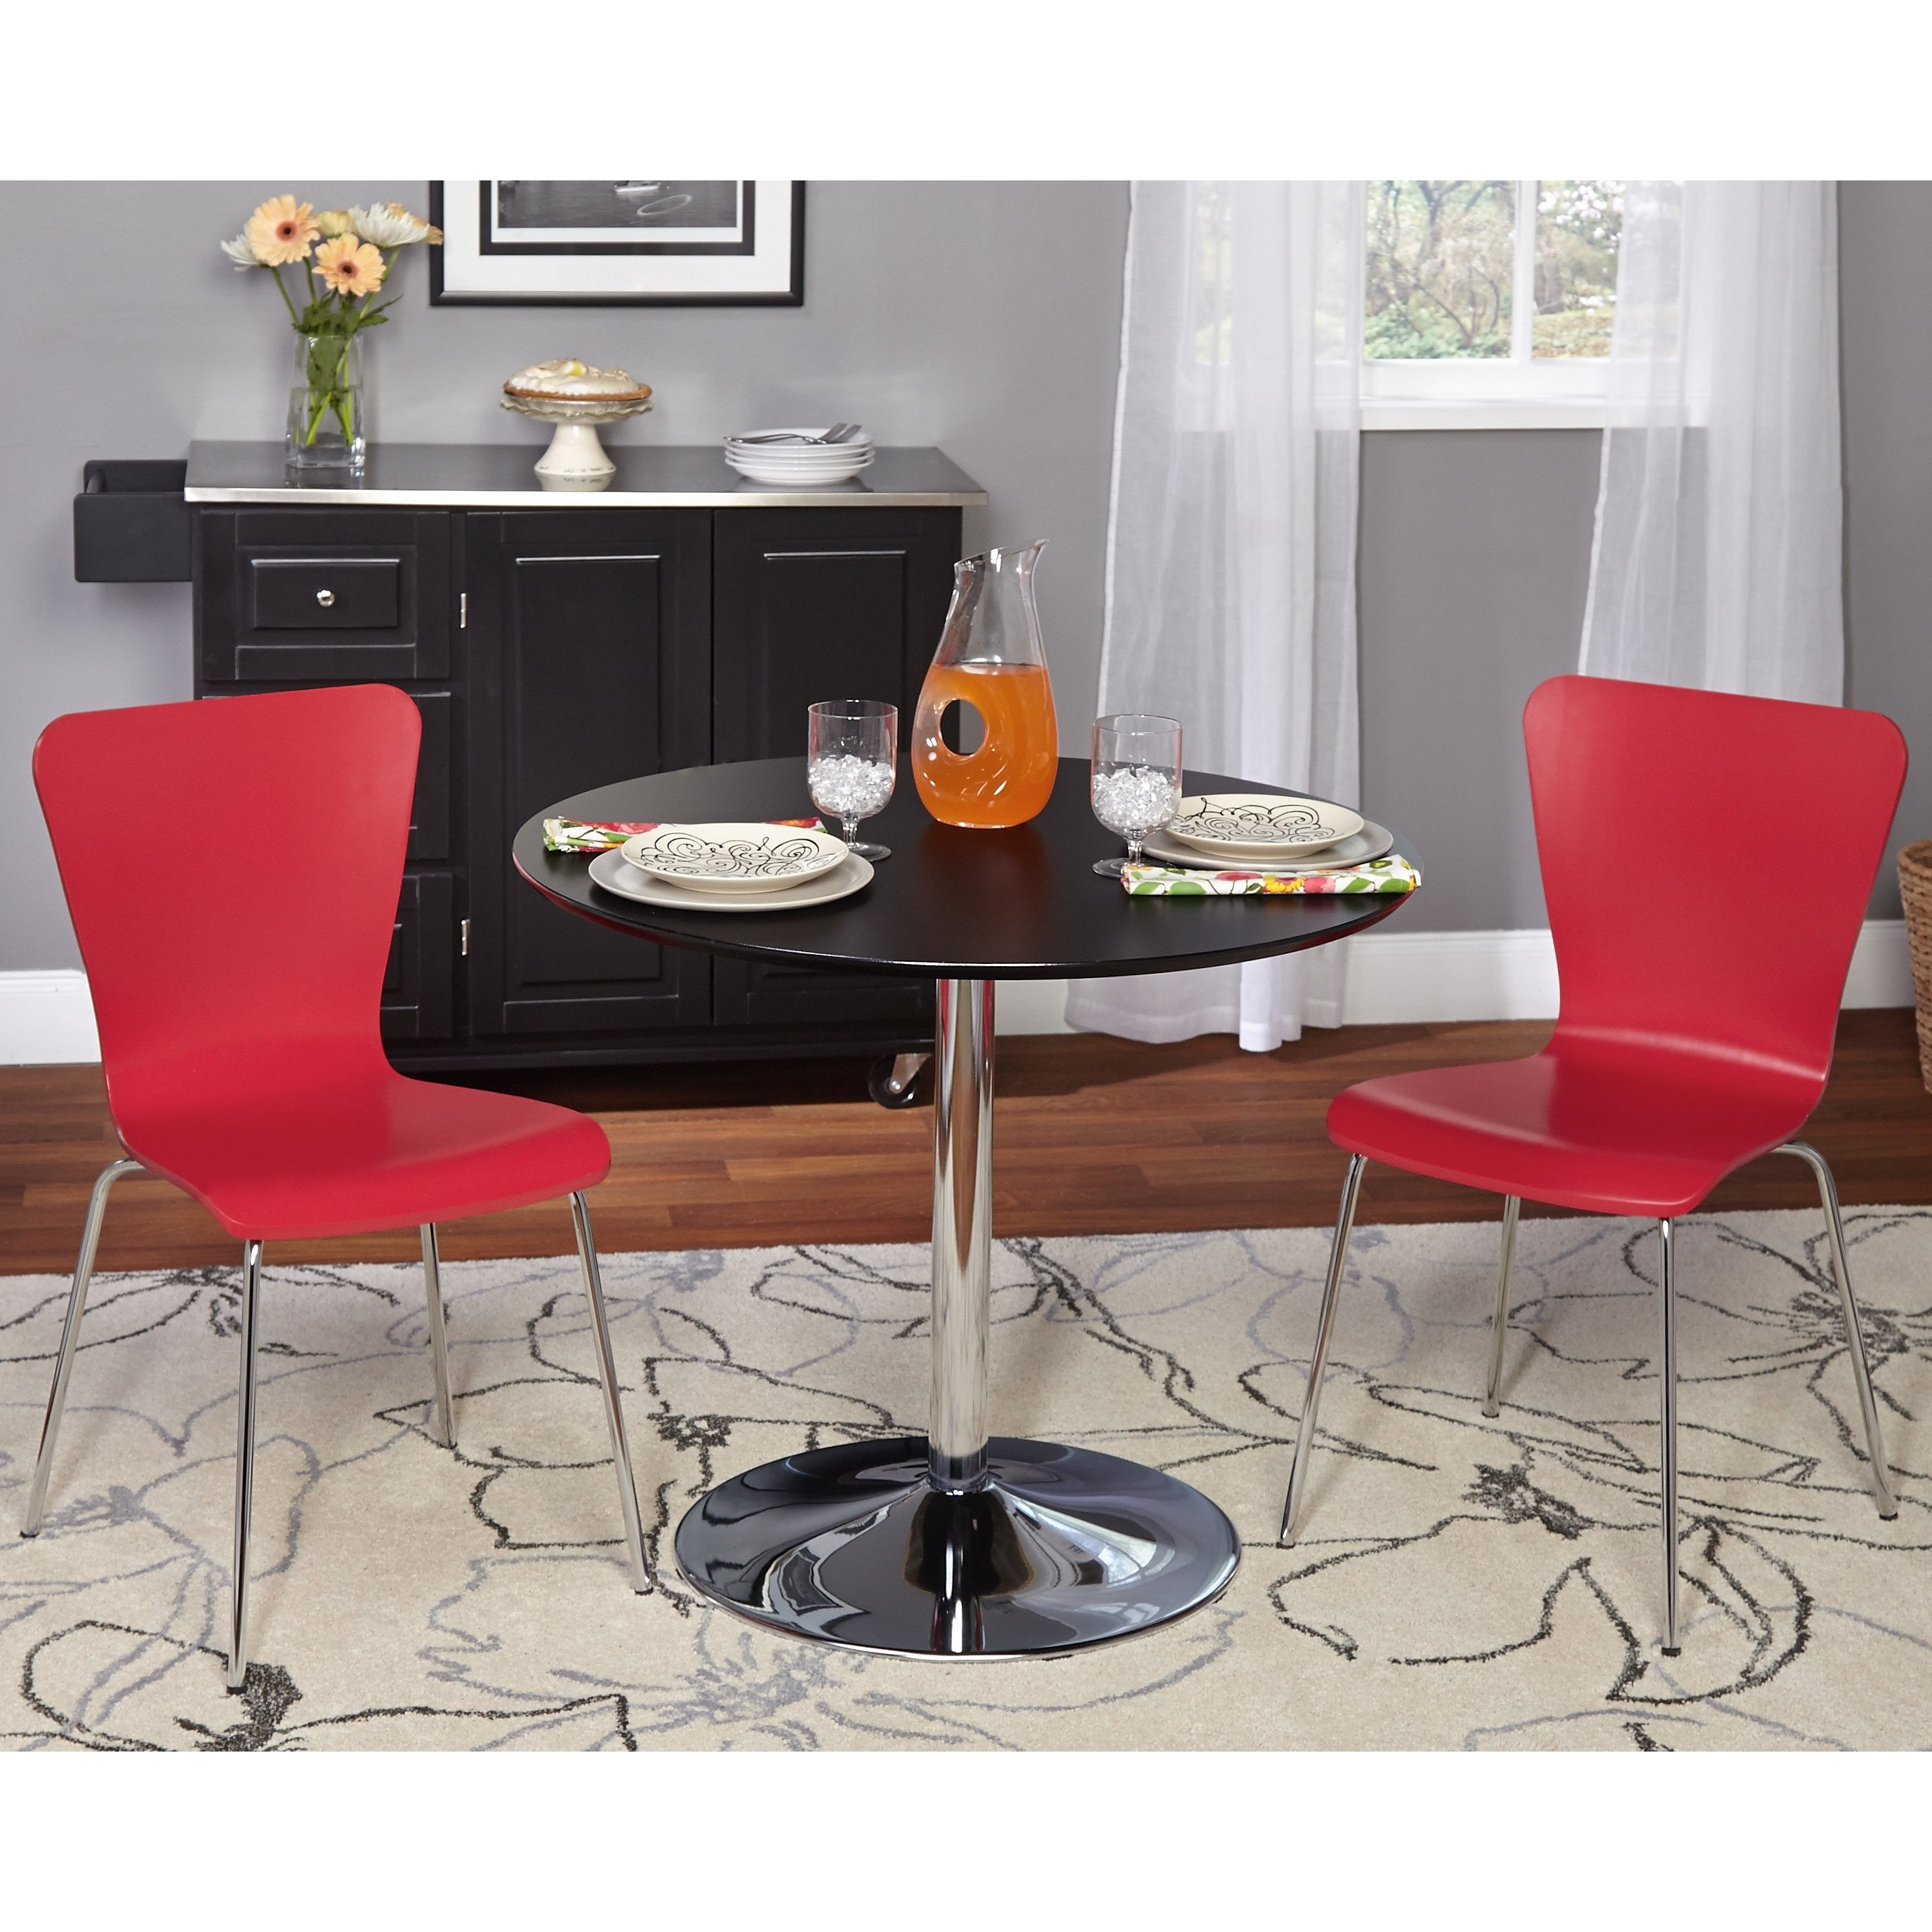 Latest Shop Simple Living 3 Piece Pisa Dining Set – Free Shipping Today Intended For Pisa Dining Tables (View 5 of 25)